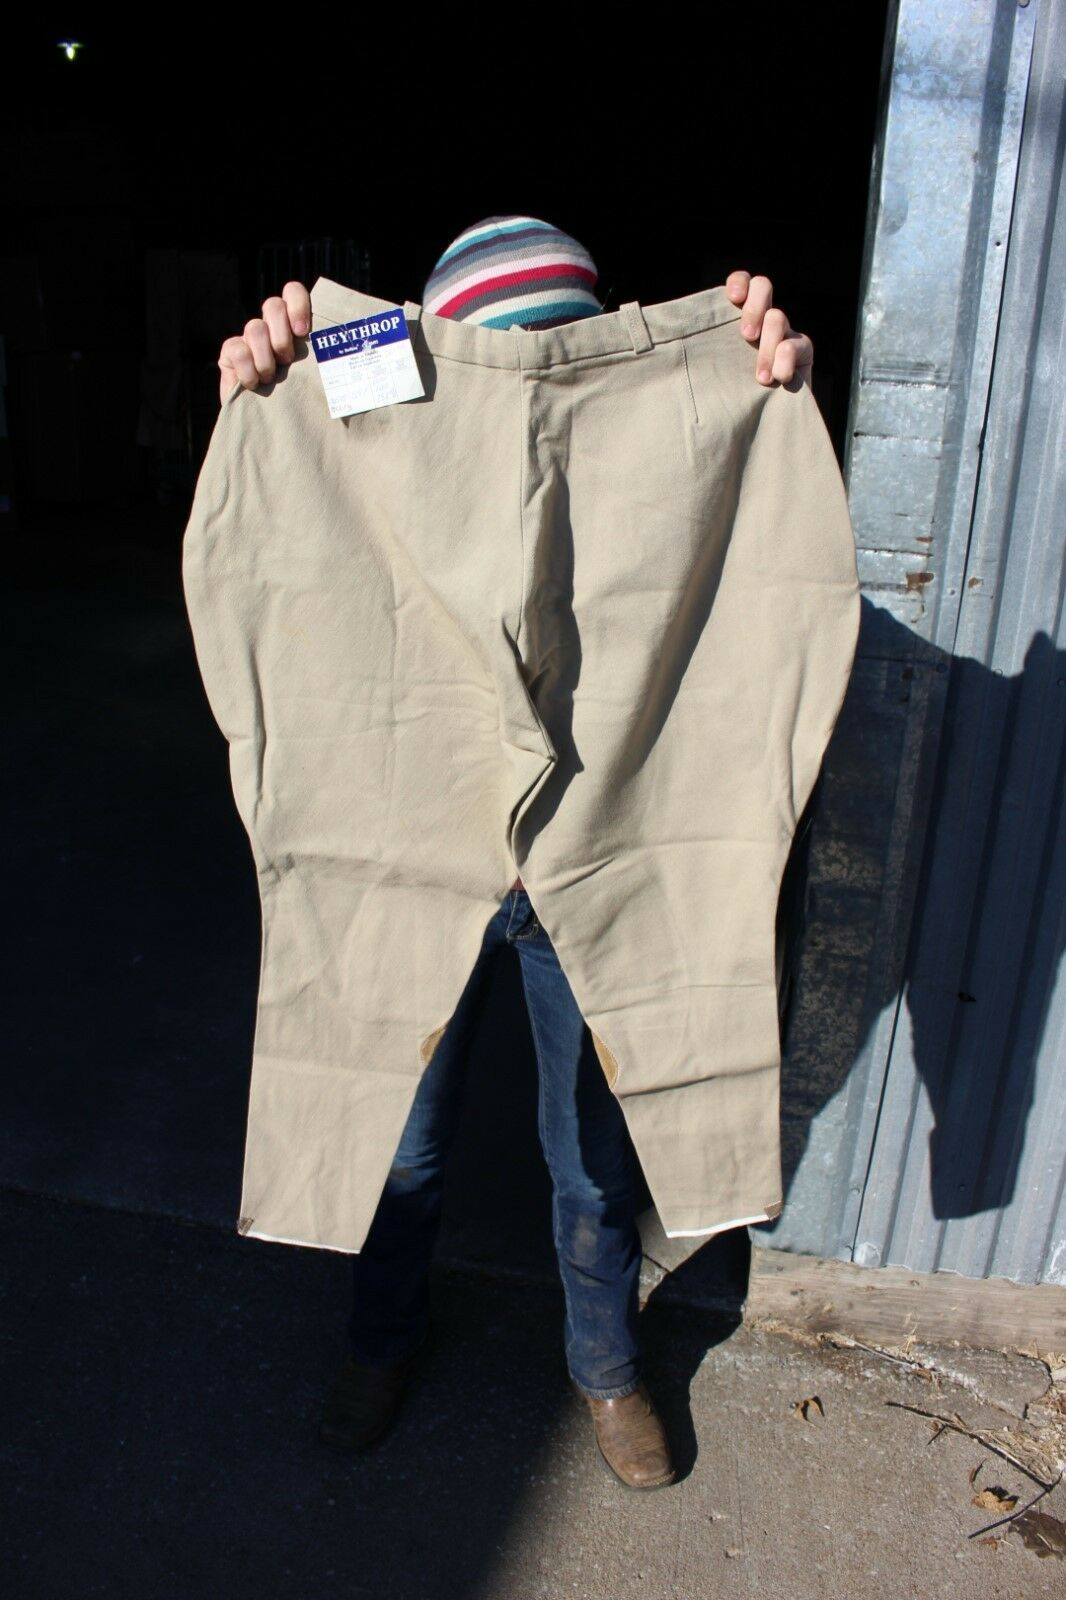 28-118  Heythrop by Bullion 28R riding breeches made in England